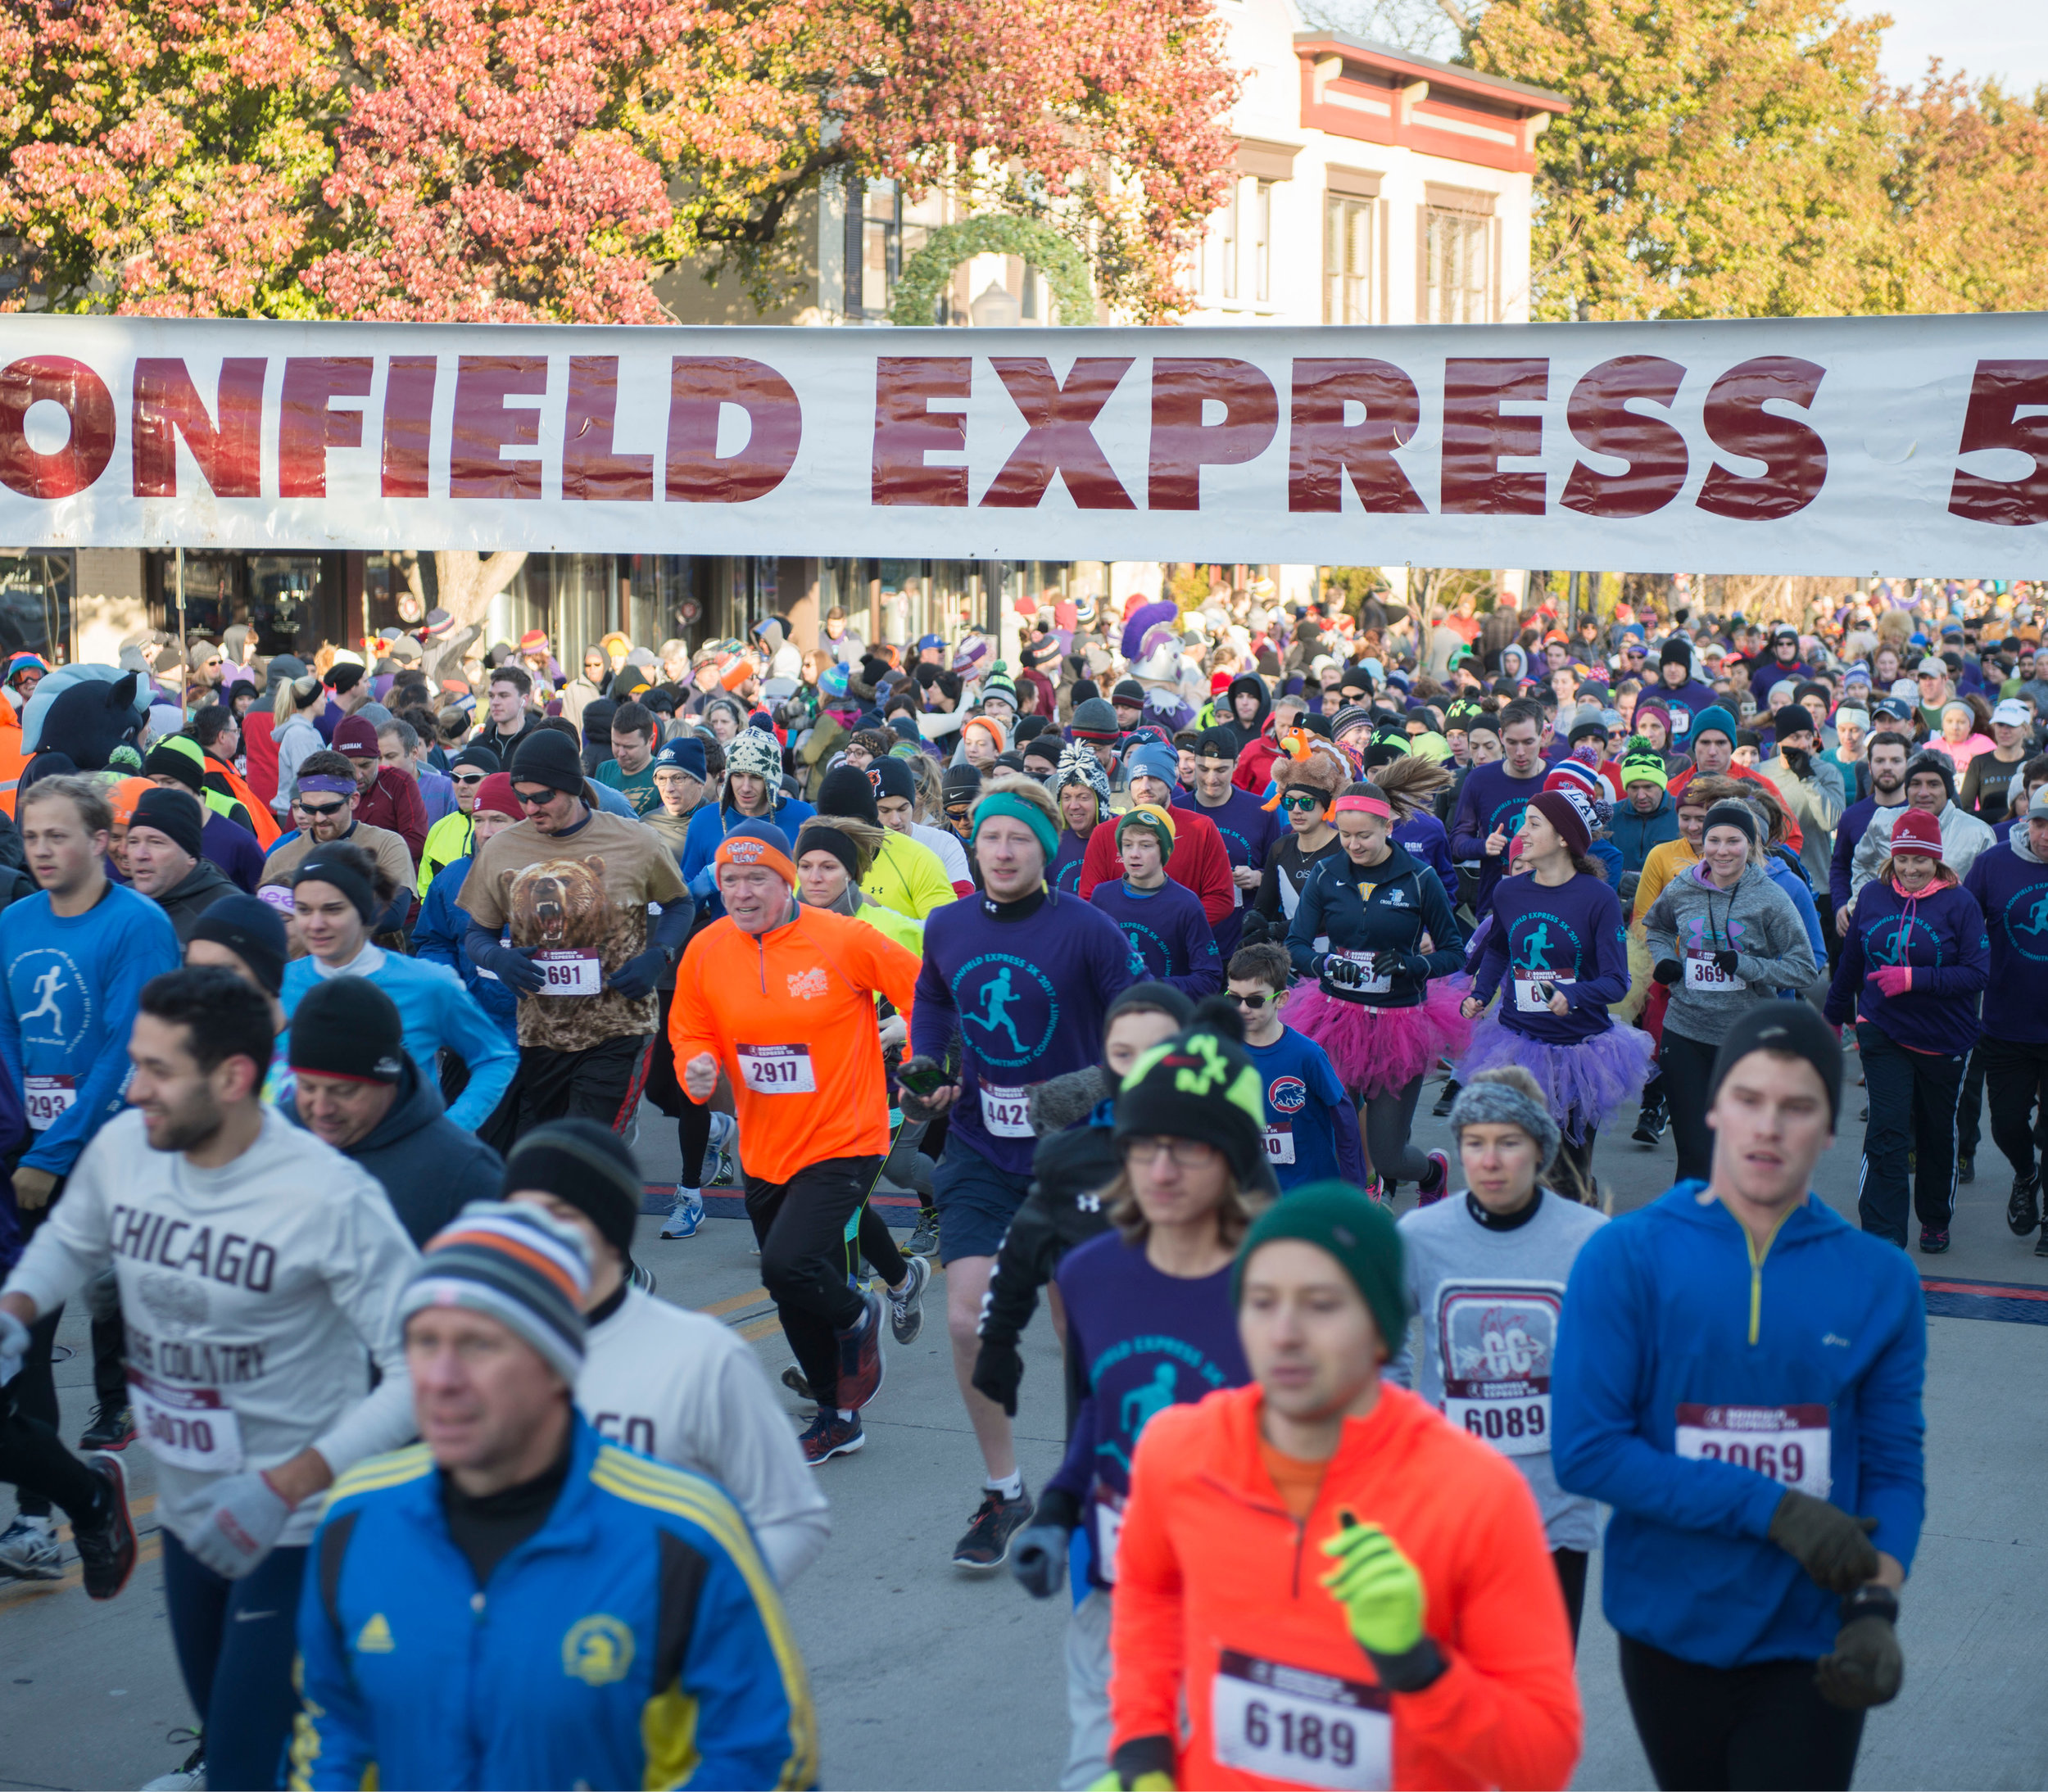 Online registration for the Bonfield Express 5K is now open.